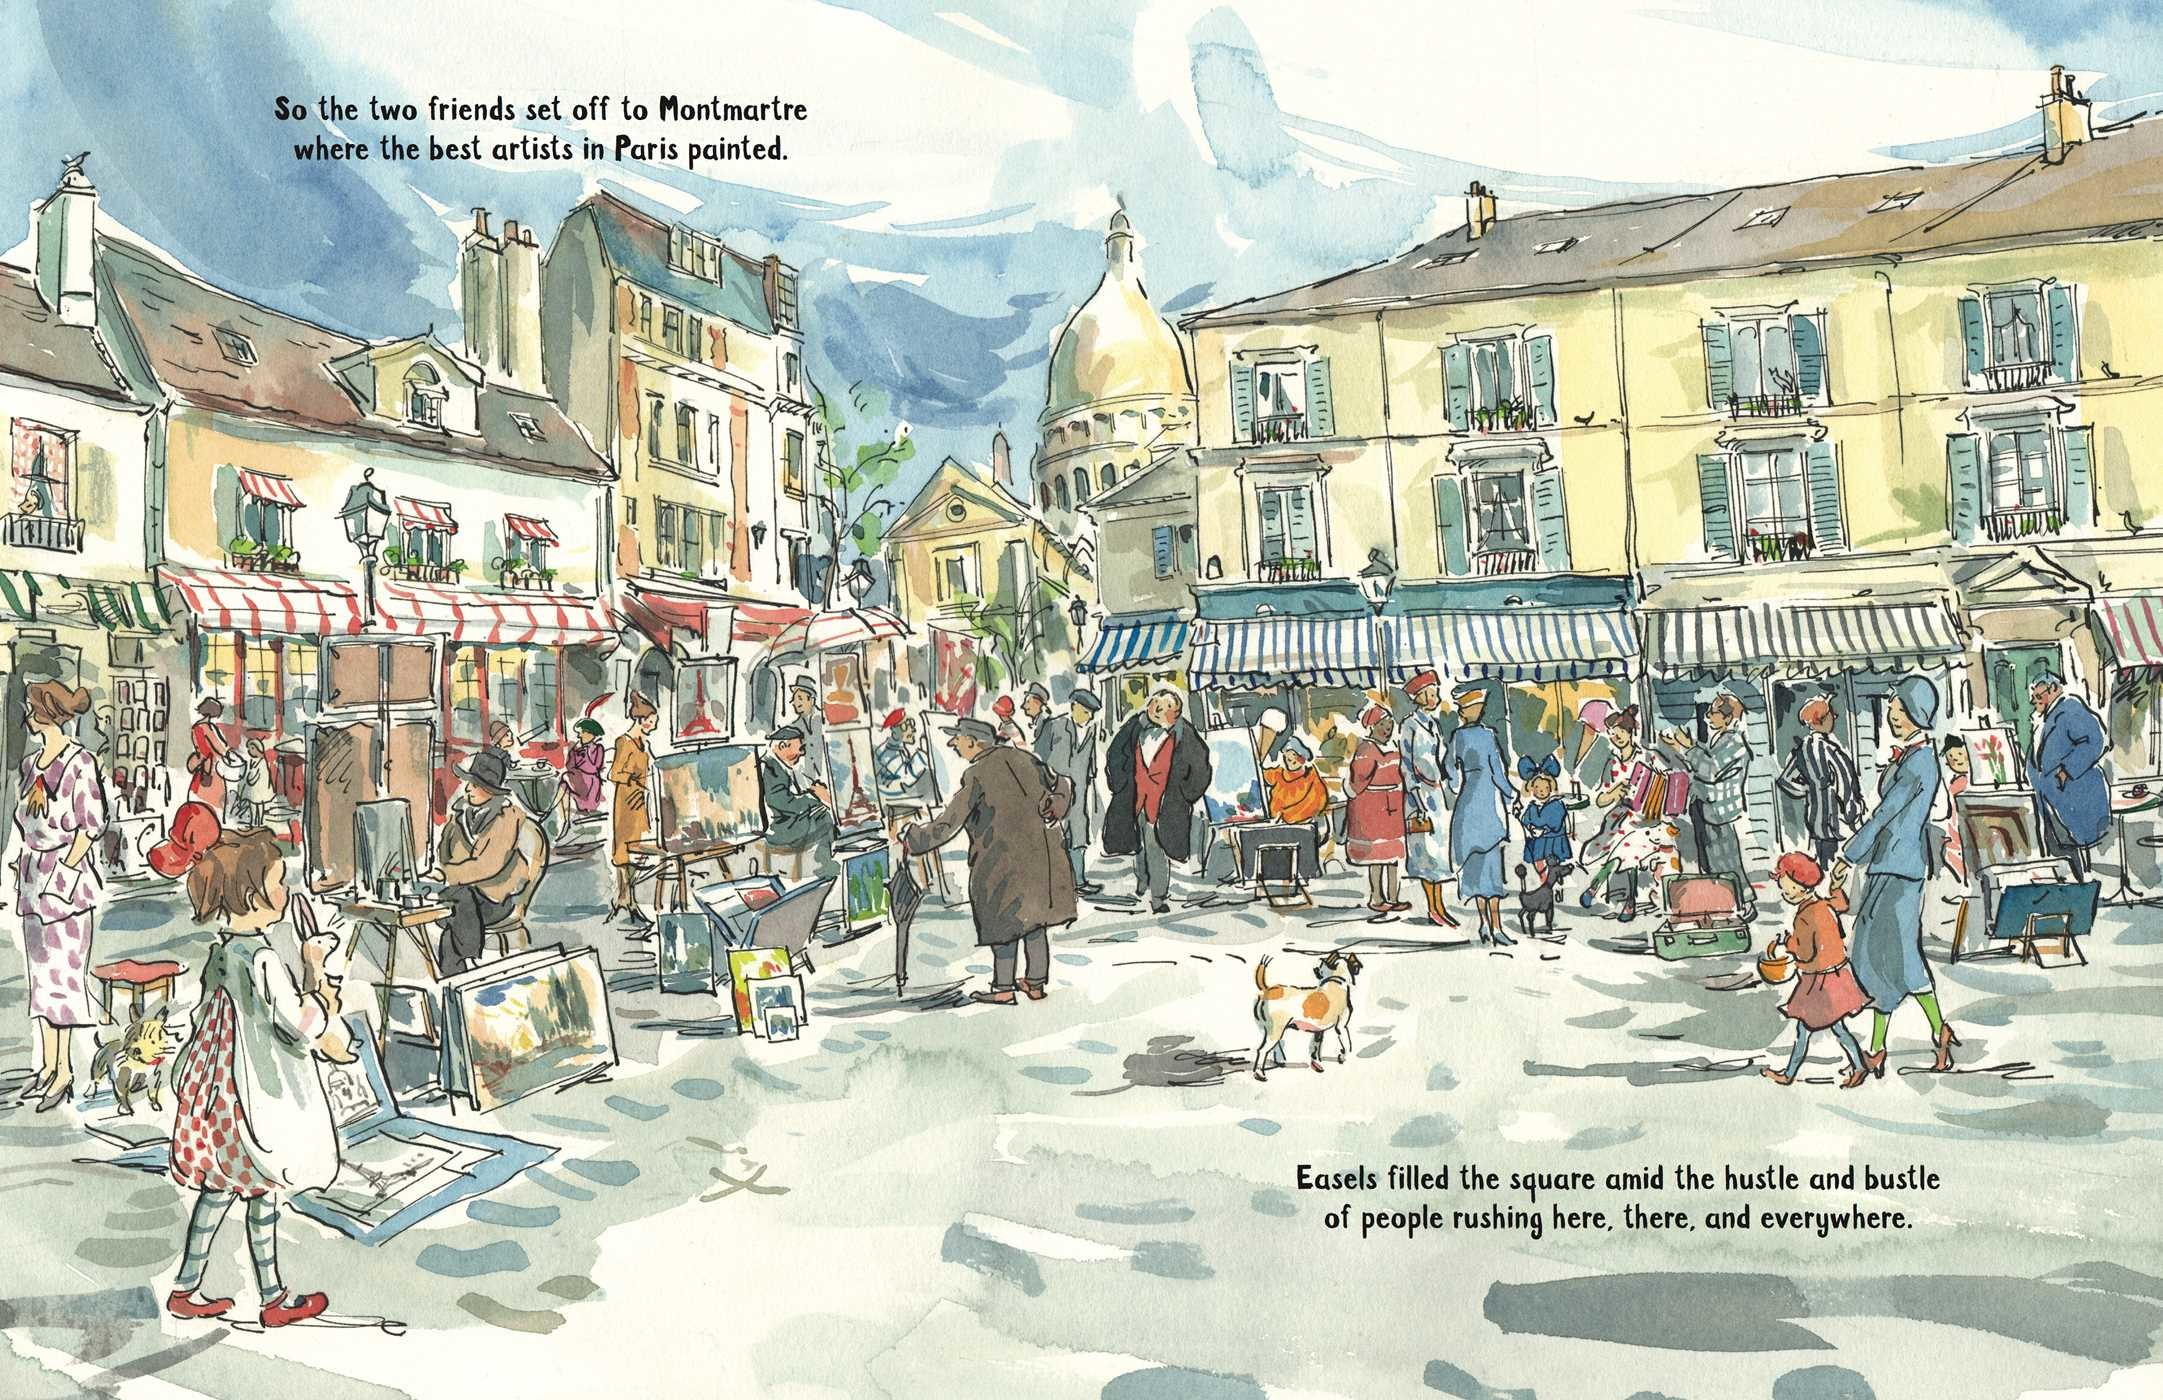 celebrate-picture-books-picture-book-review-painting-pepette-pepette-at-montmartre